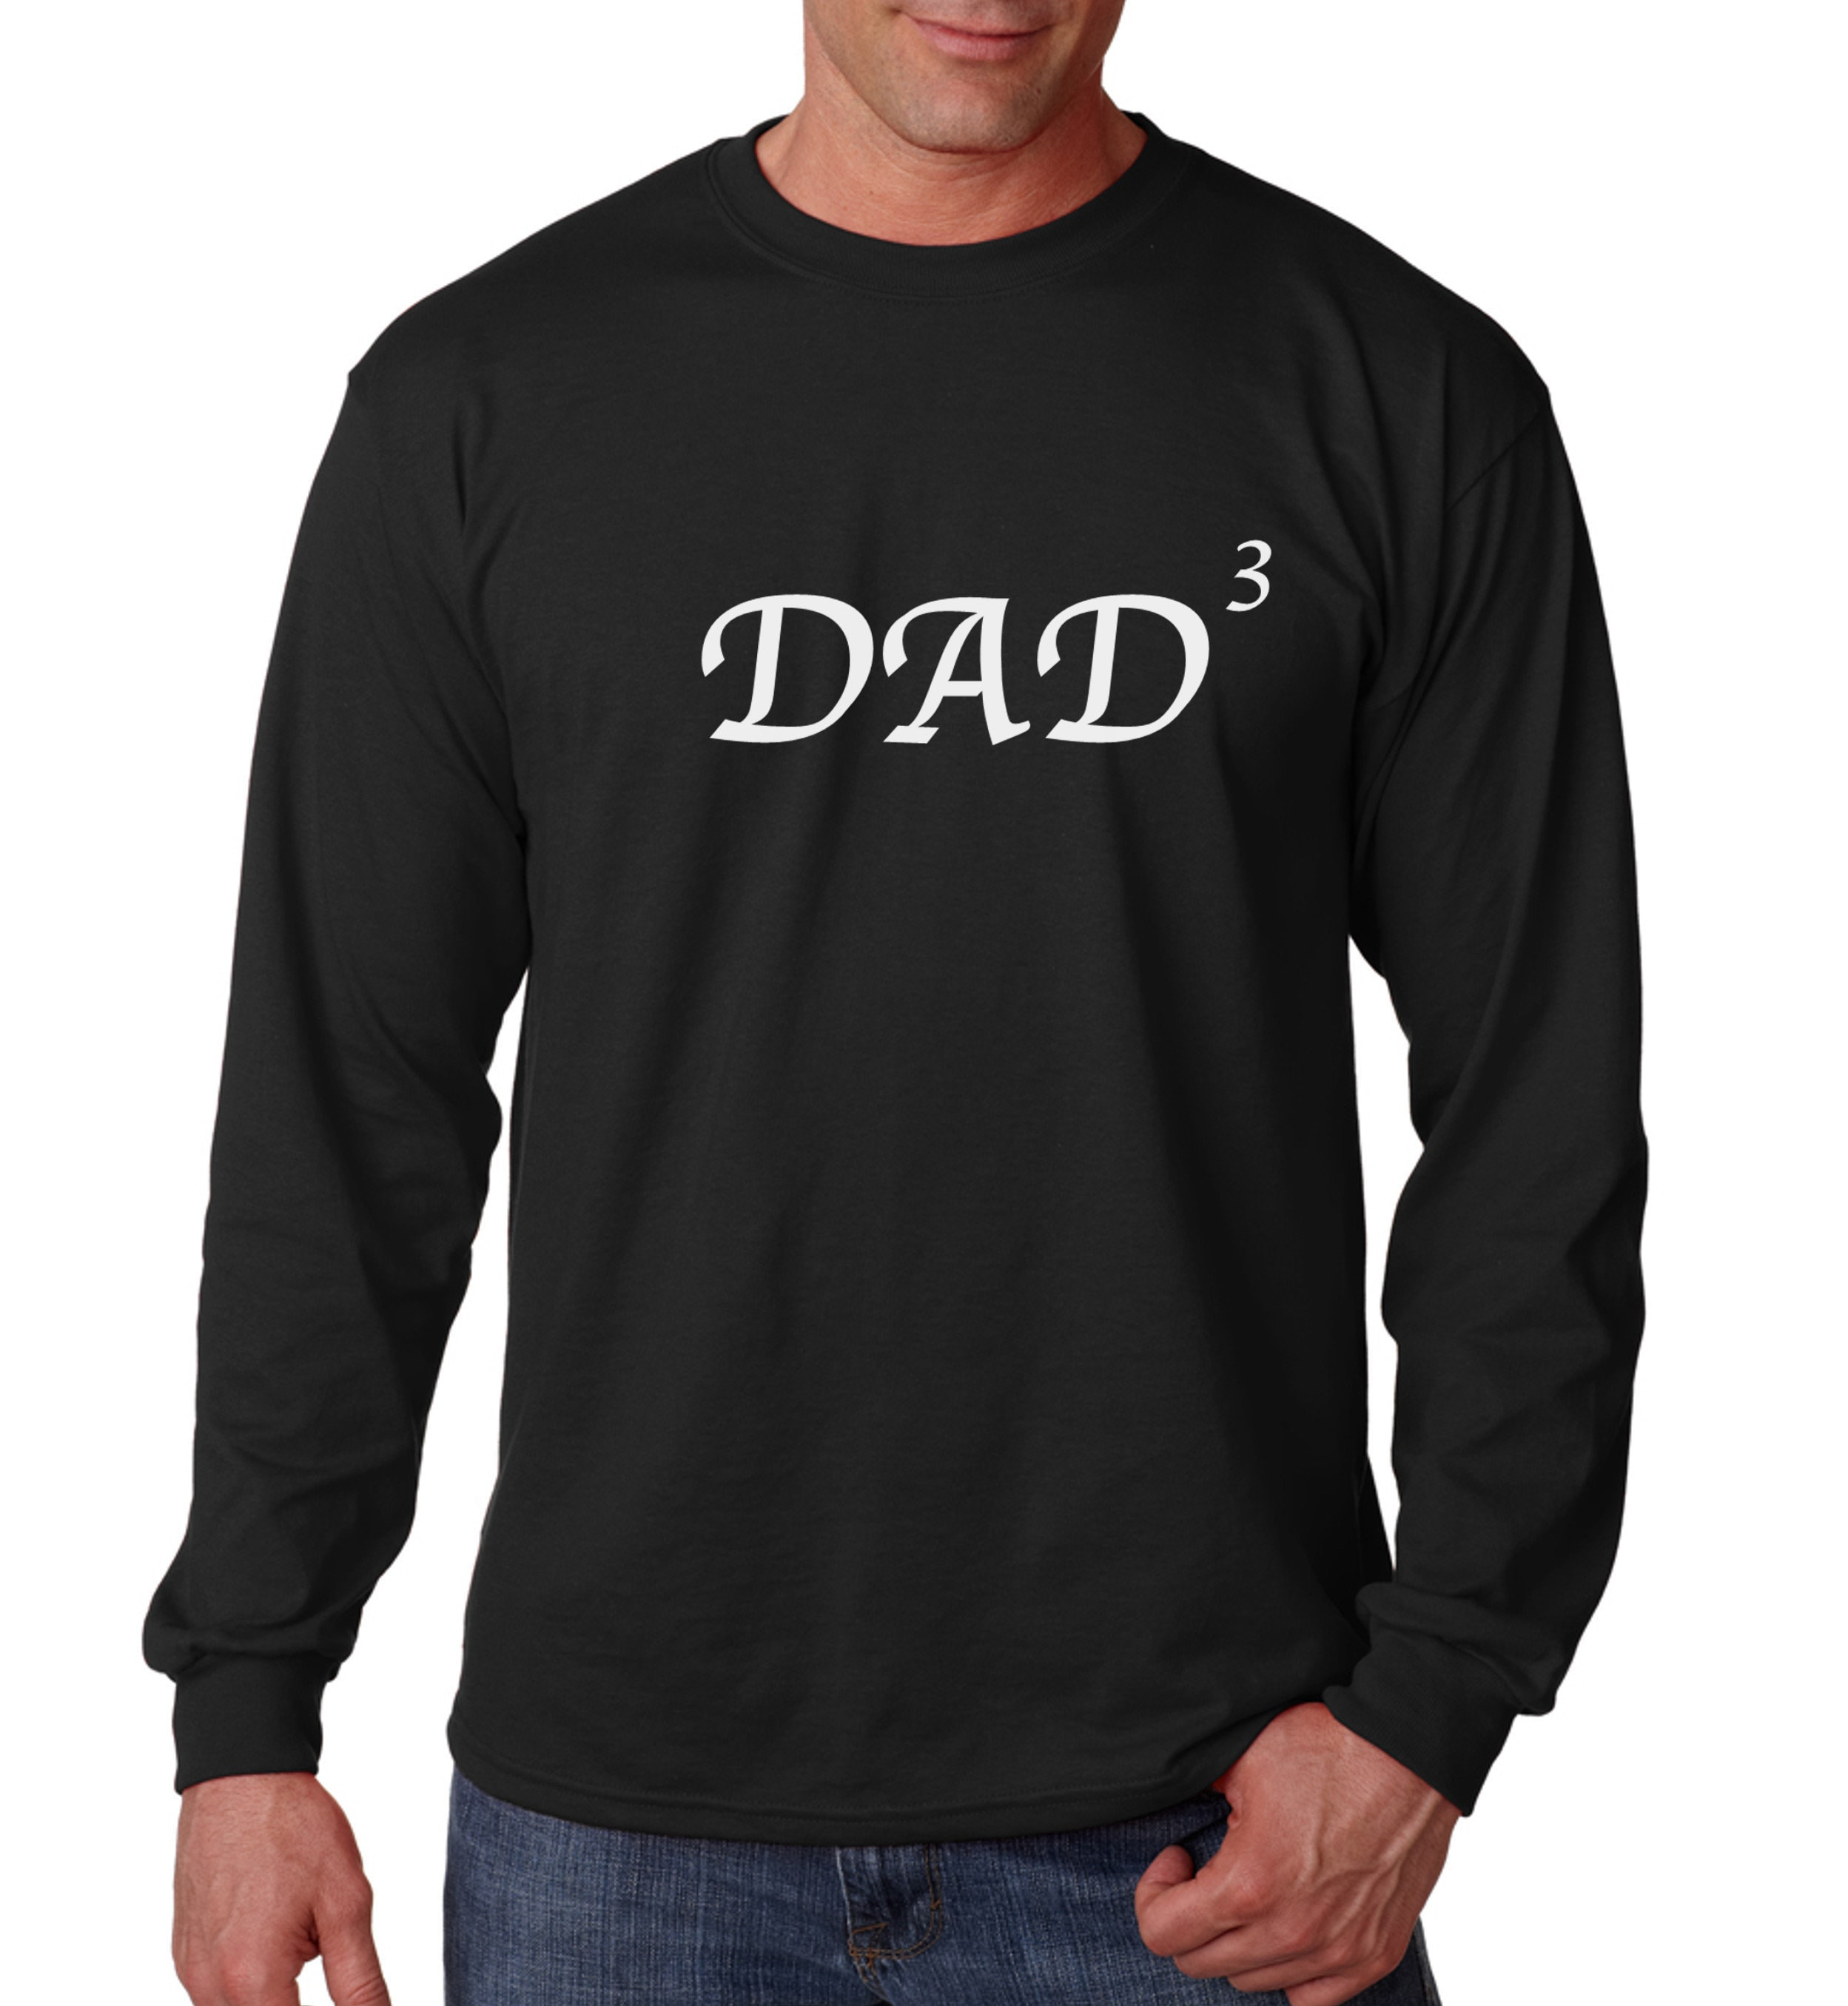 e00221ae6befc Long Sleeve - Dad Of 3 Shirt - Best Dad T-Shirt - Daddy x3 - Fathers ...